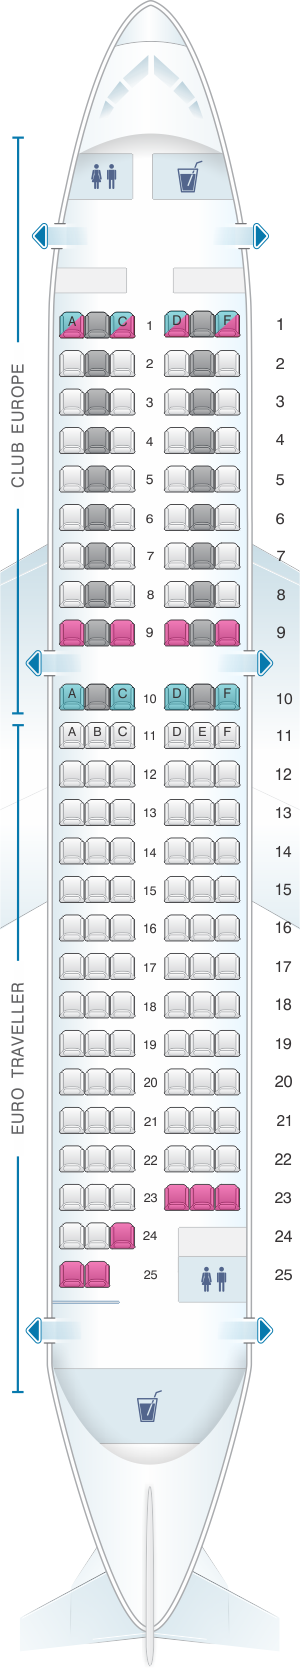 Seat map for British Airways Airbus A319 European Layout